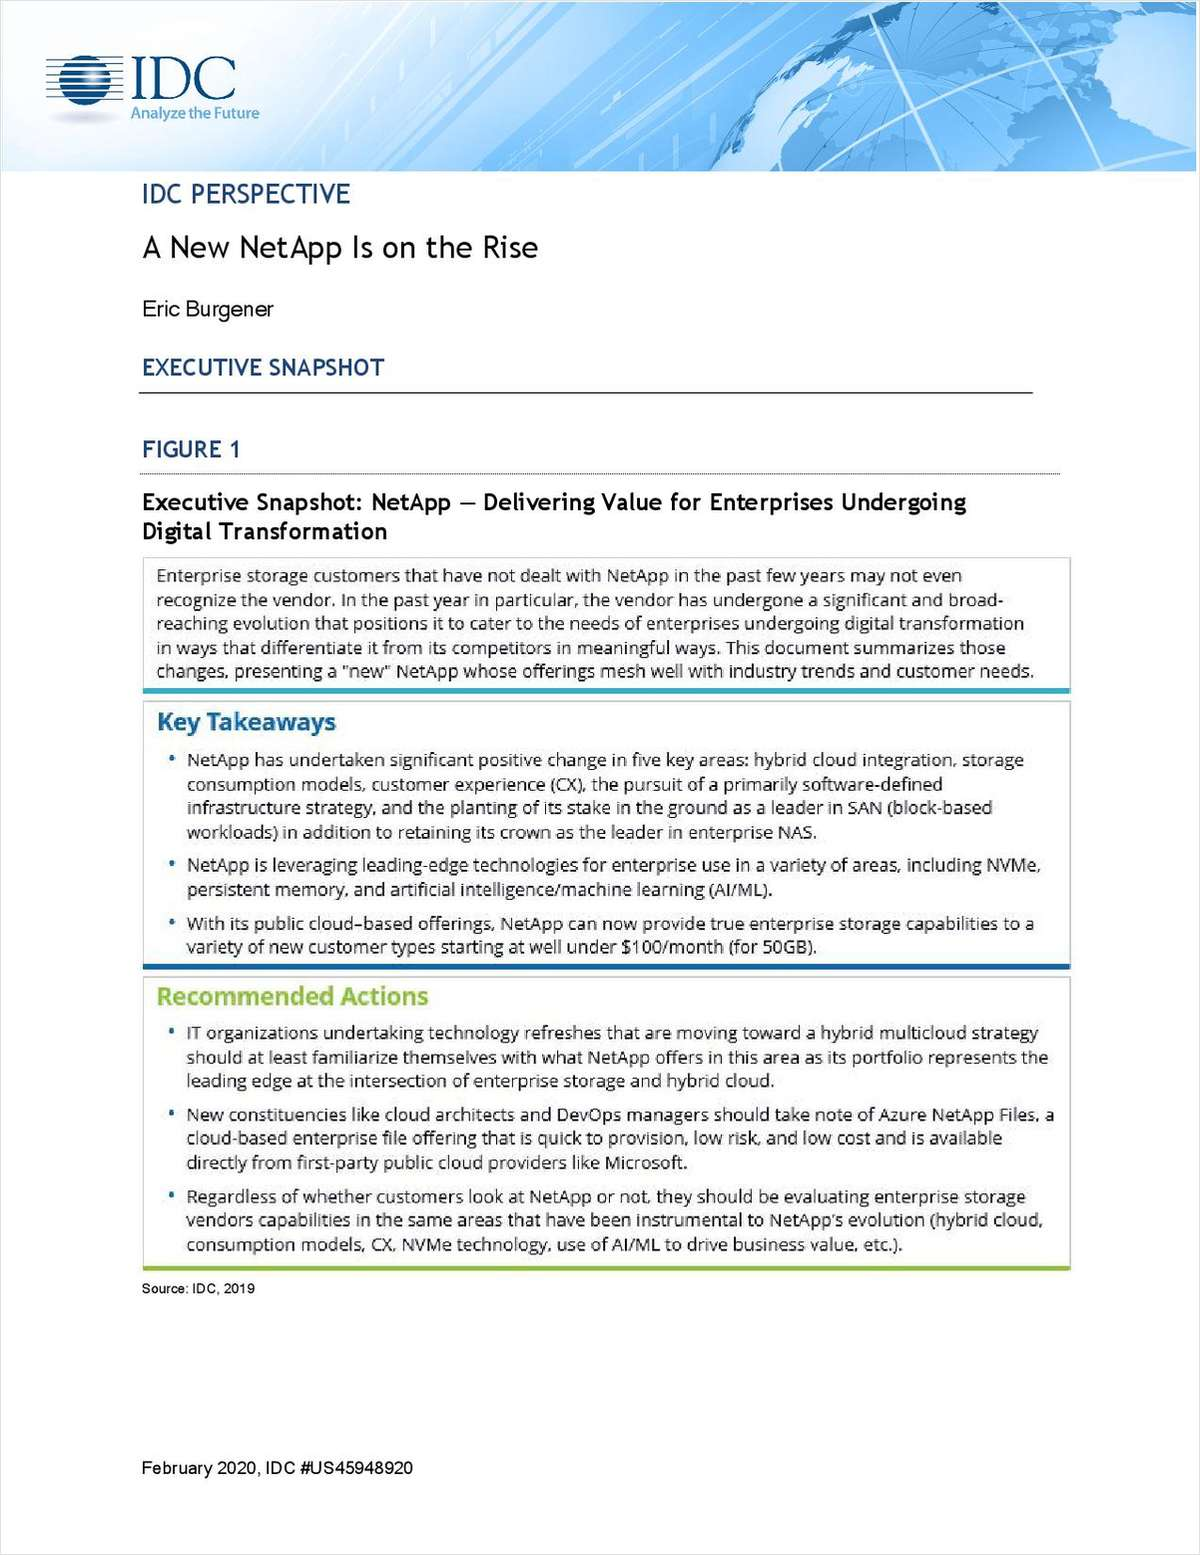 IDC Perspective: A New NetApp Is on the Rise